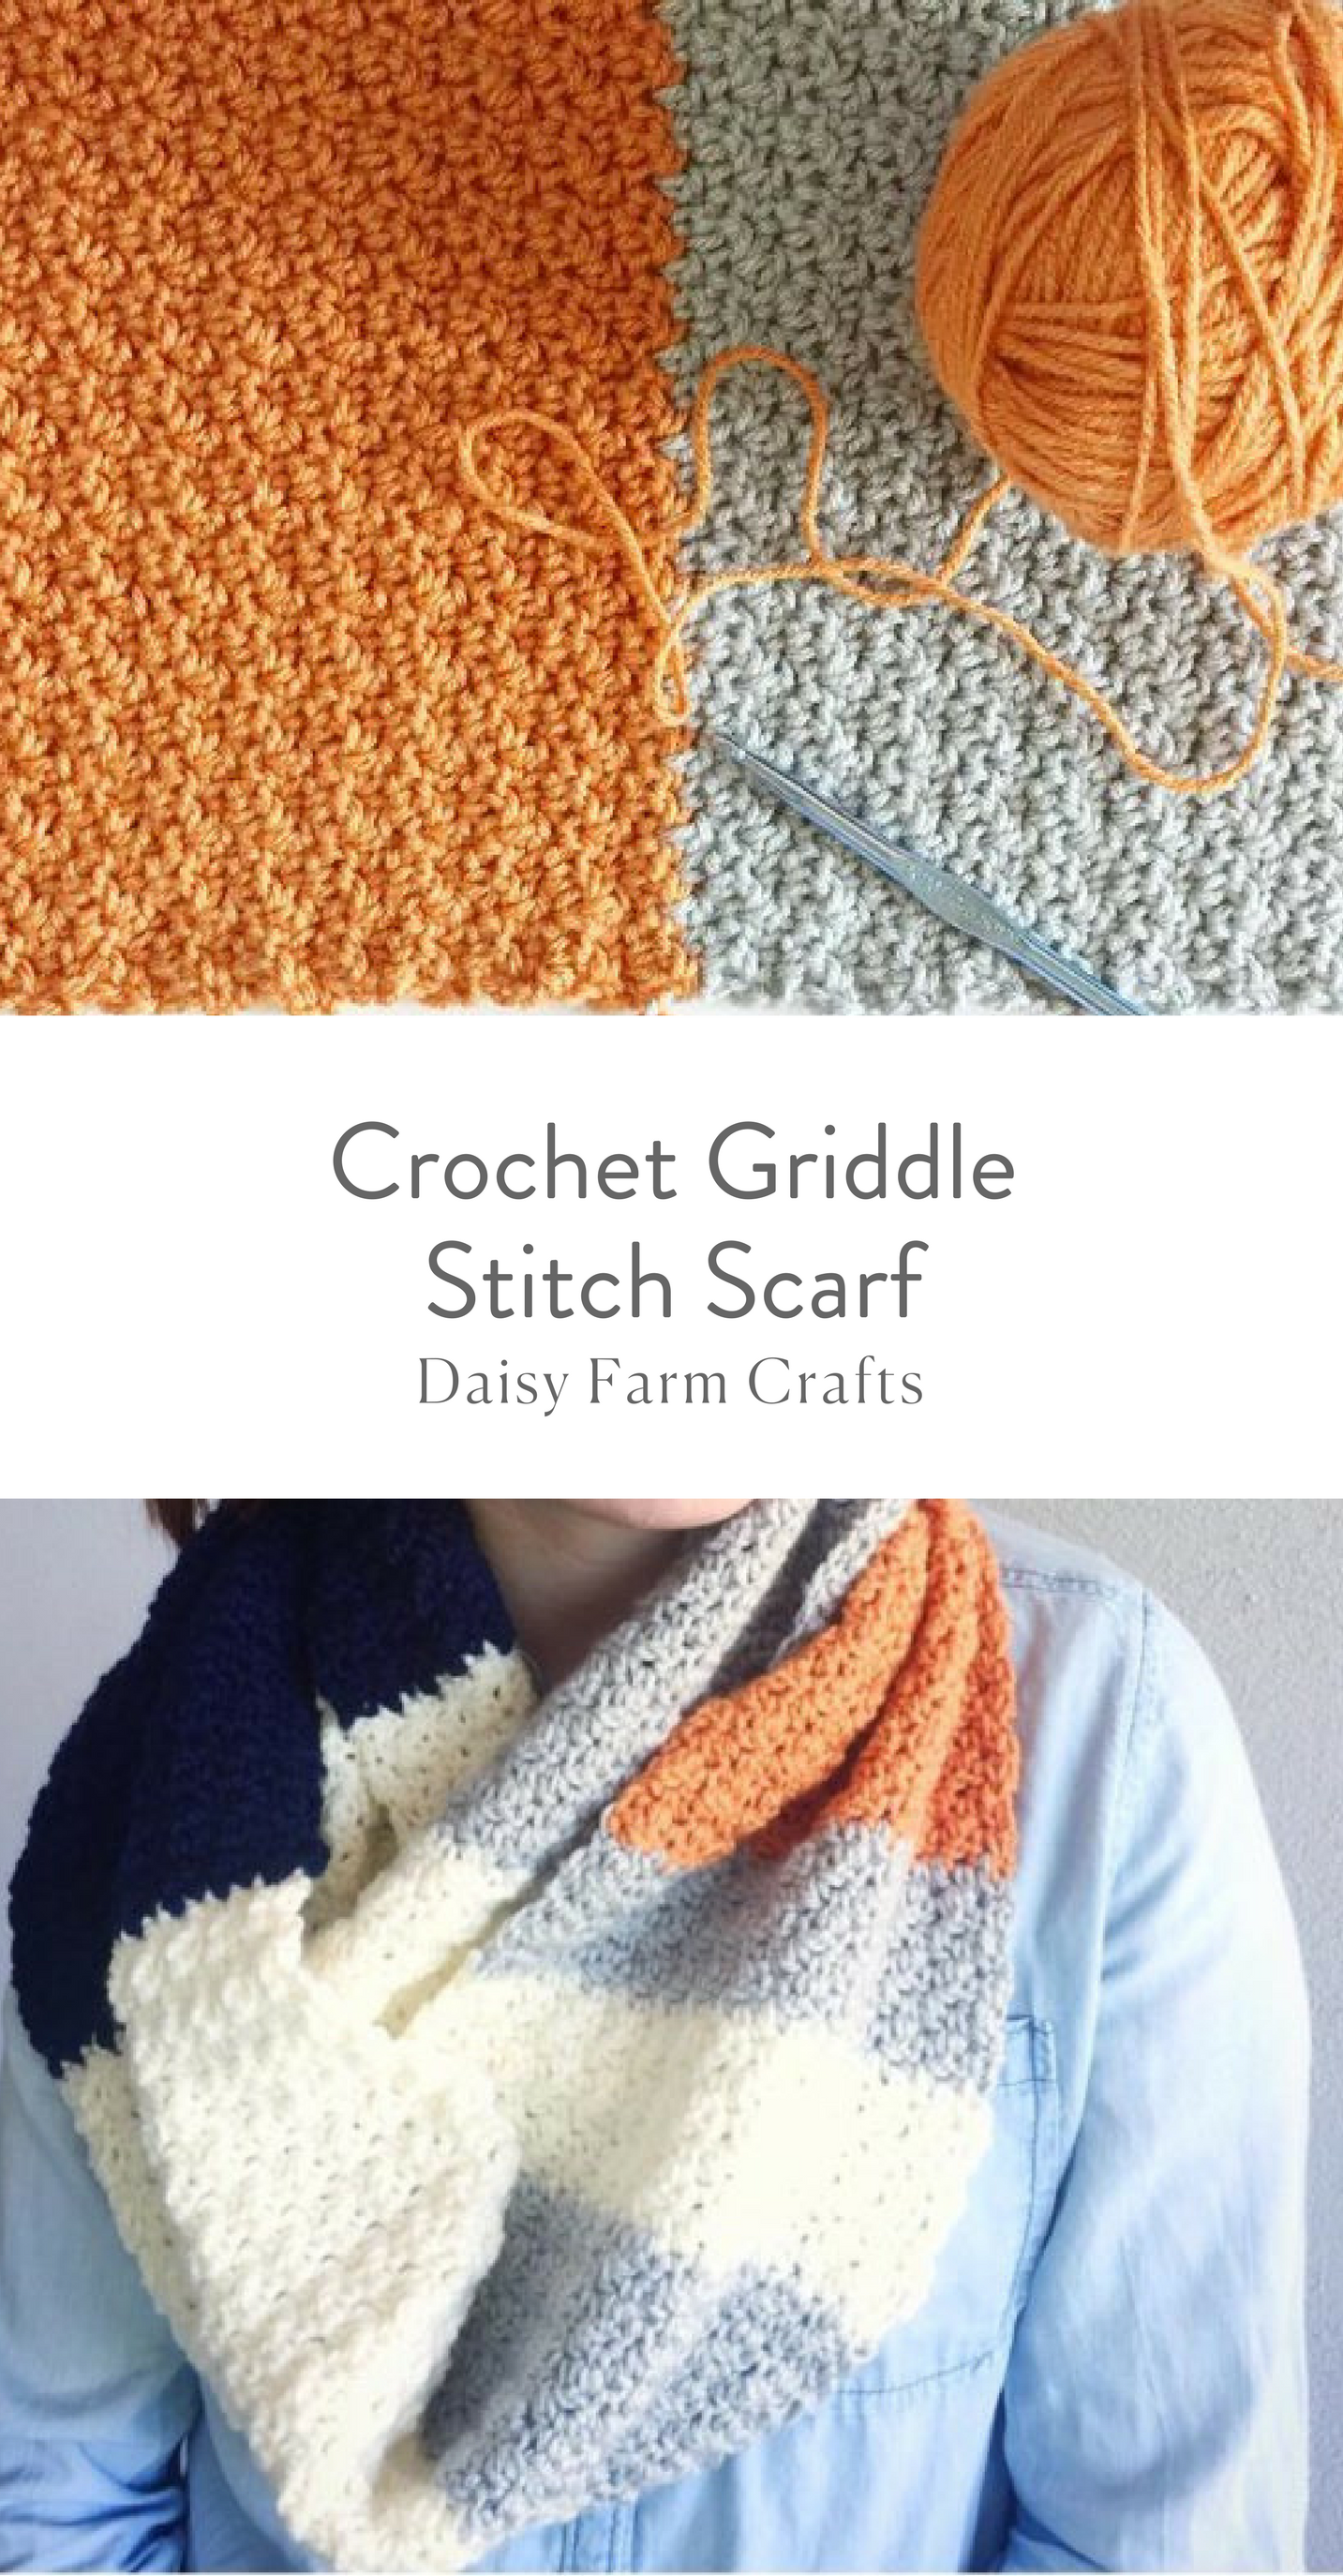 Free Pattern - Crochet Griddle Stitch Scarf | Crochet/yarn ...